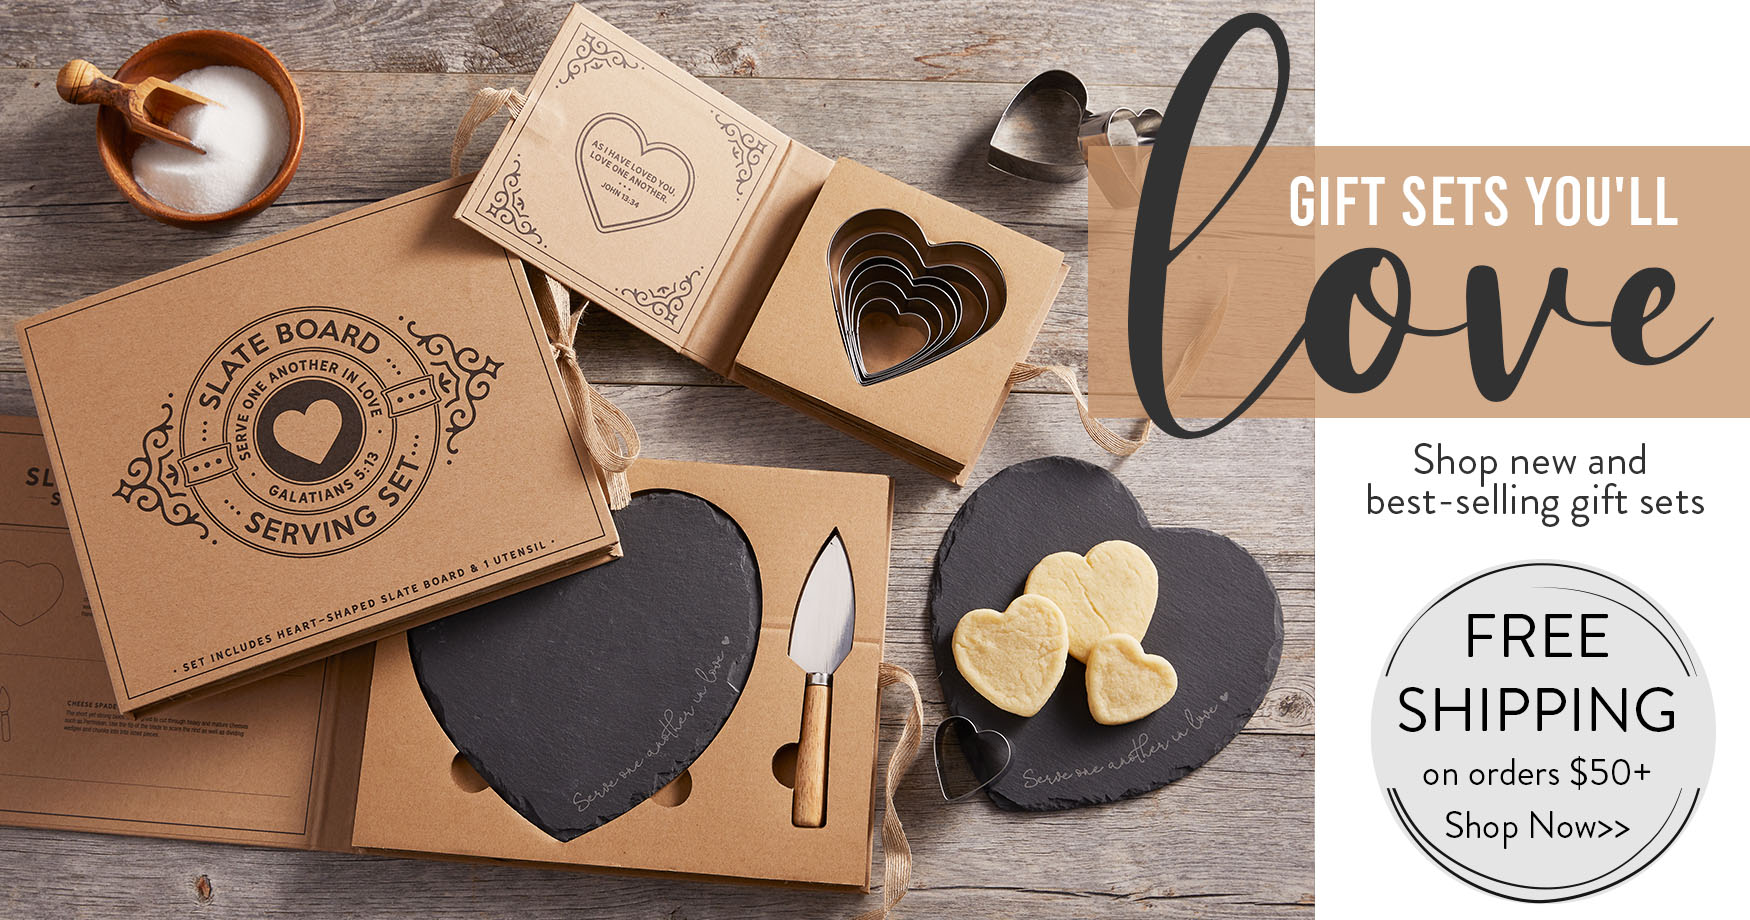 Gift Sets You'll Love!